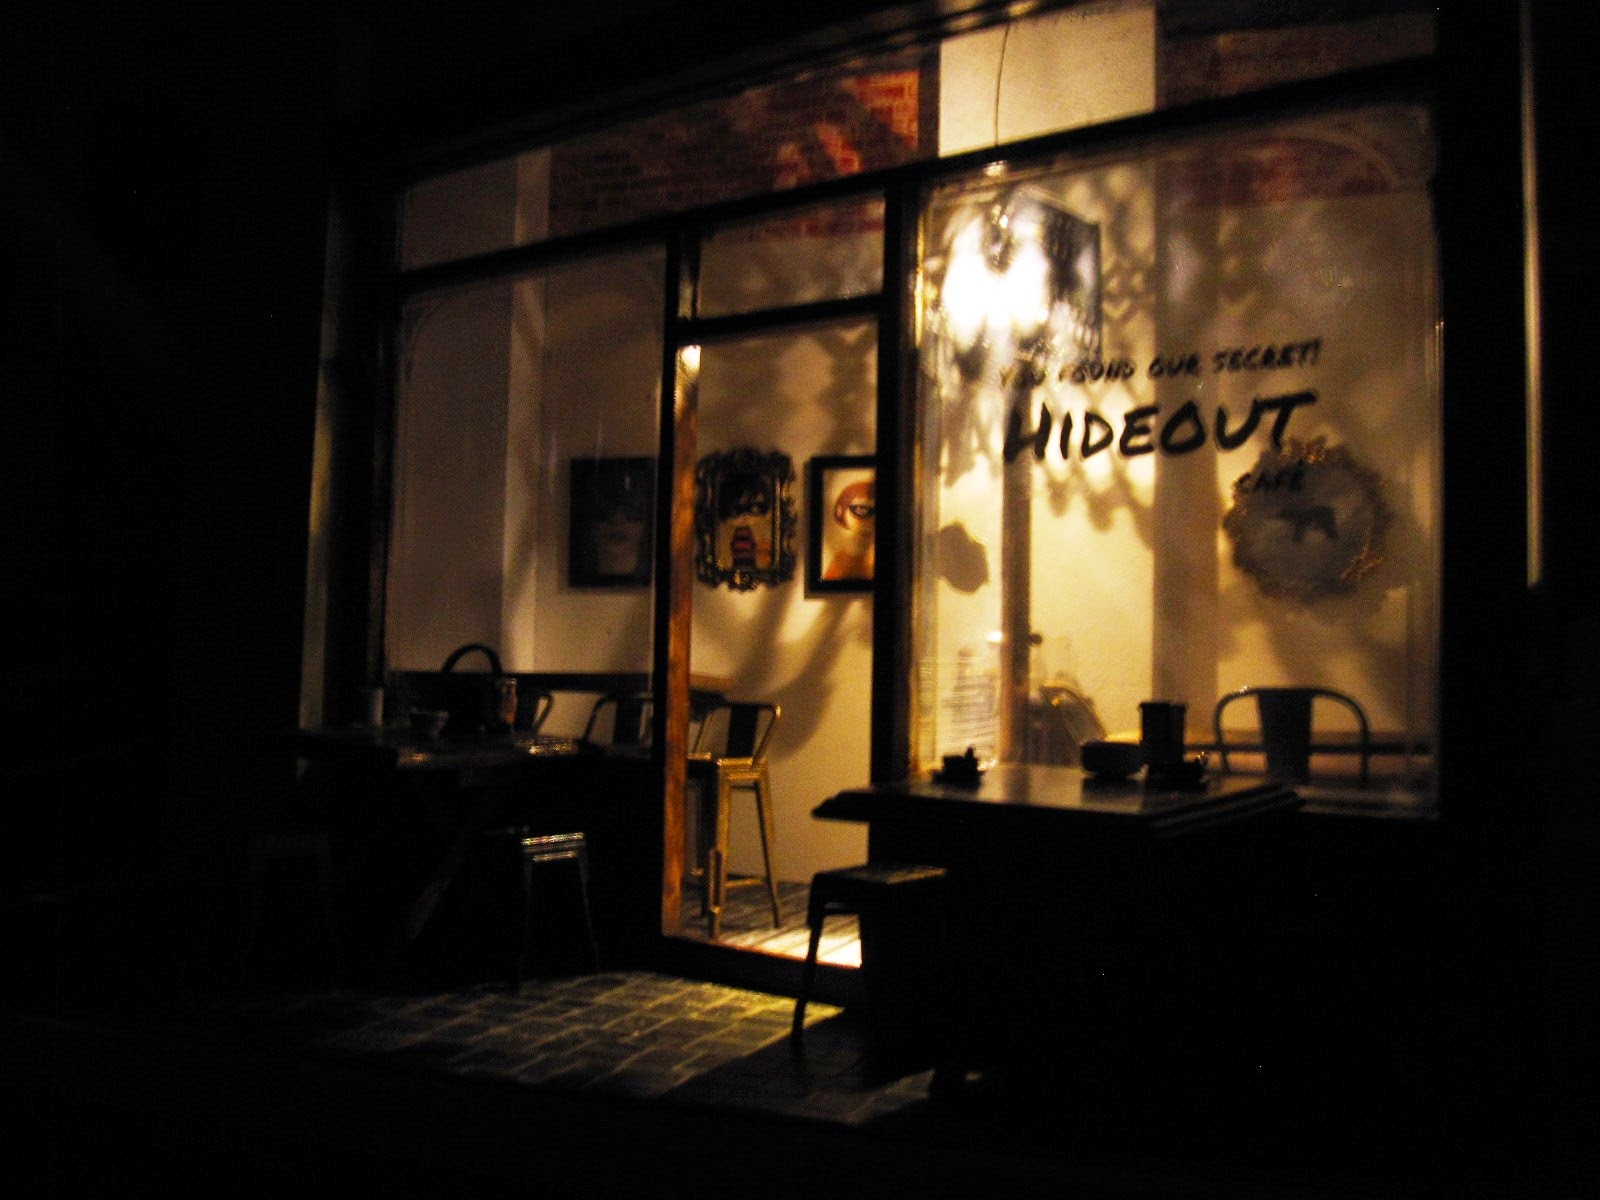 Exterior of a modern dolls' house miniature cafe at night, with the interior light up.